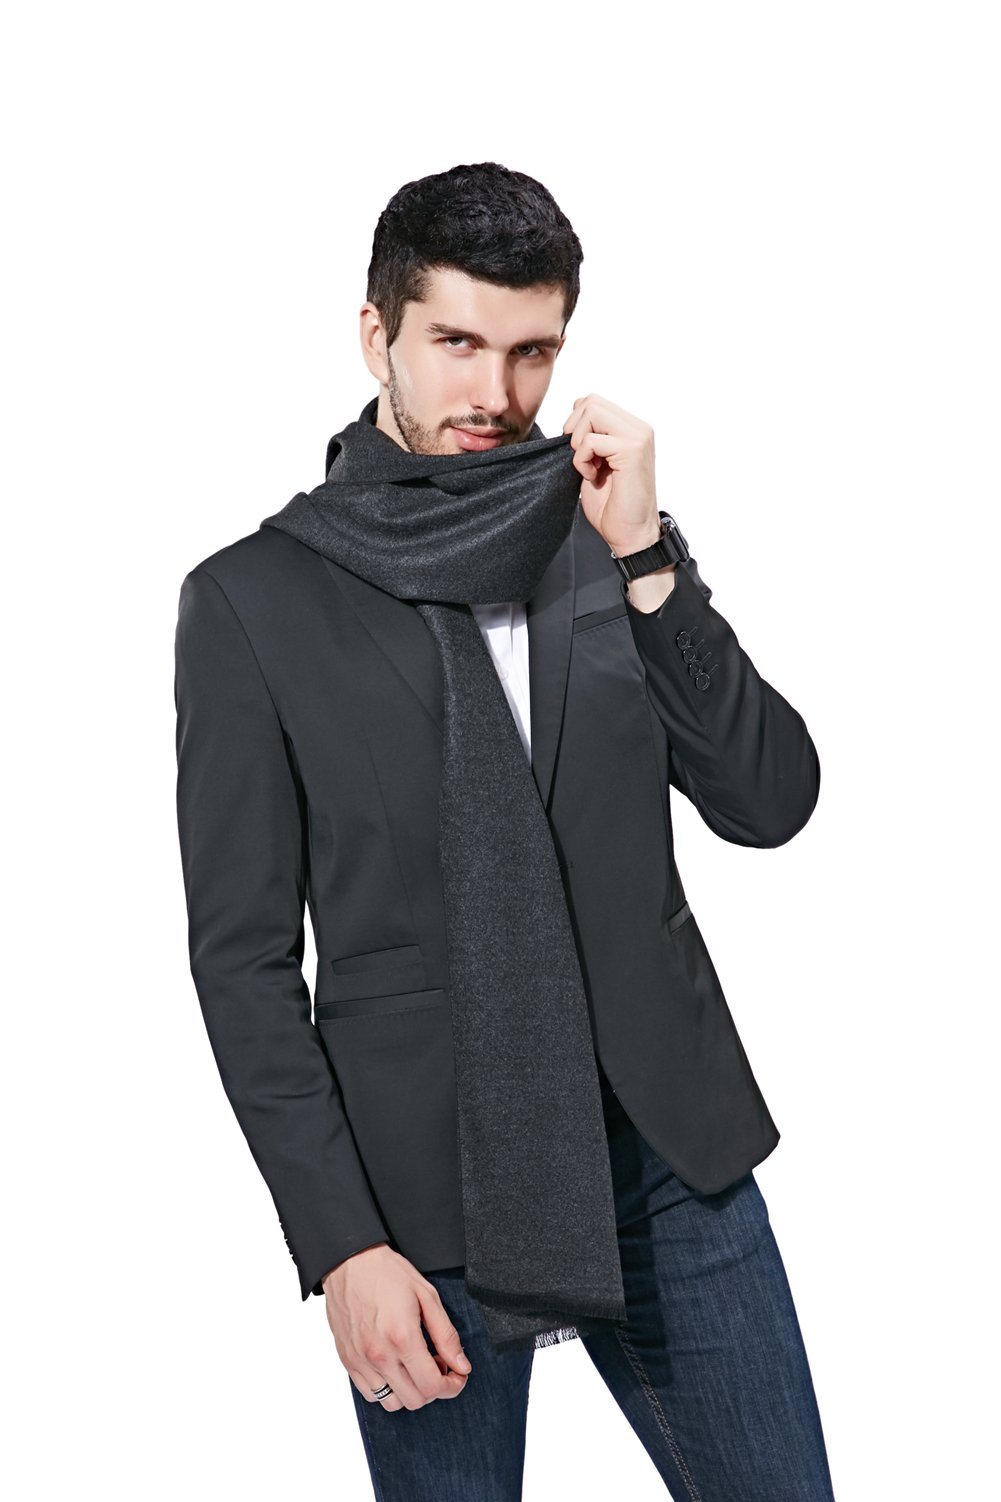 FULLRON Men Winter Scarf Long Cashmere Scarves, Grey Cotton Scarf for Men by FULLRON (Image #3)